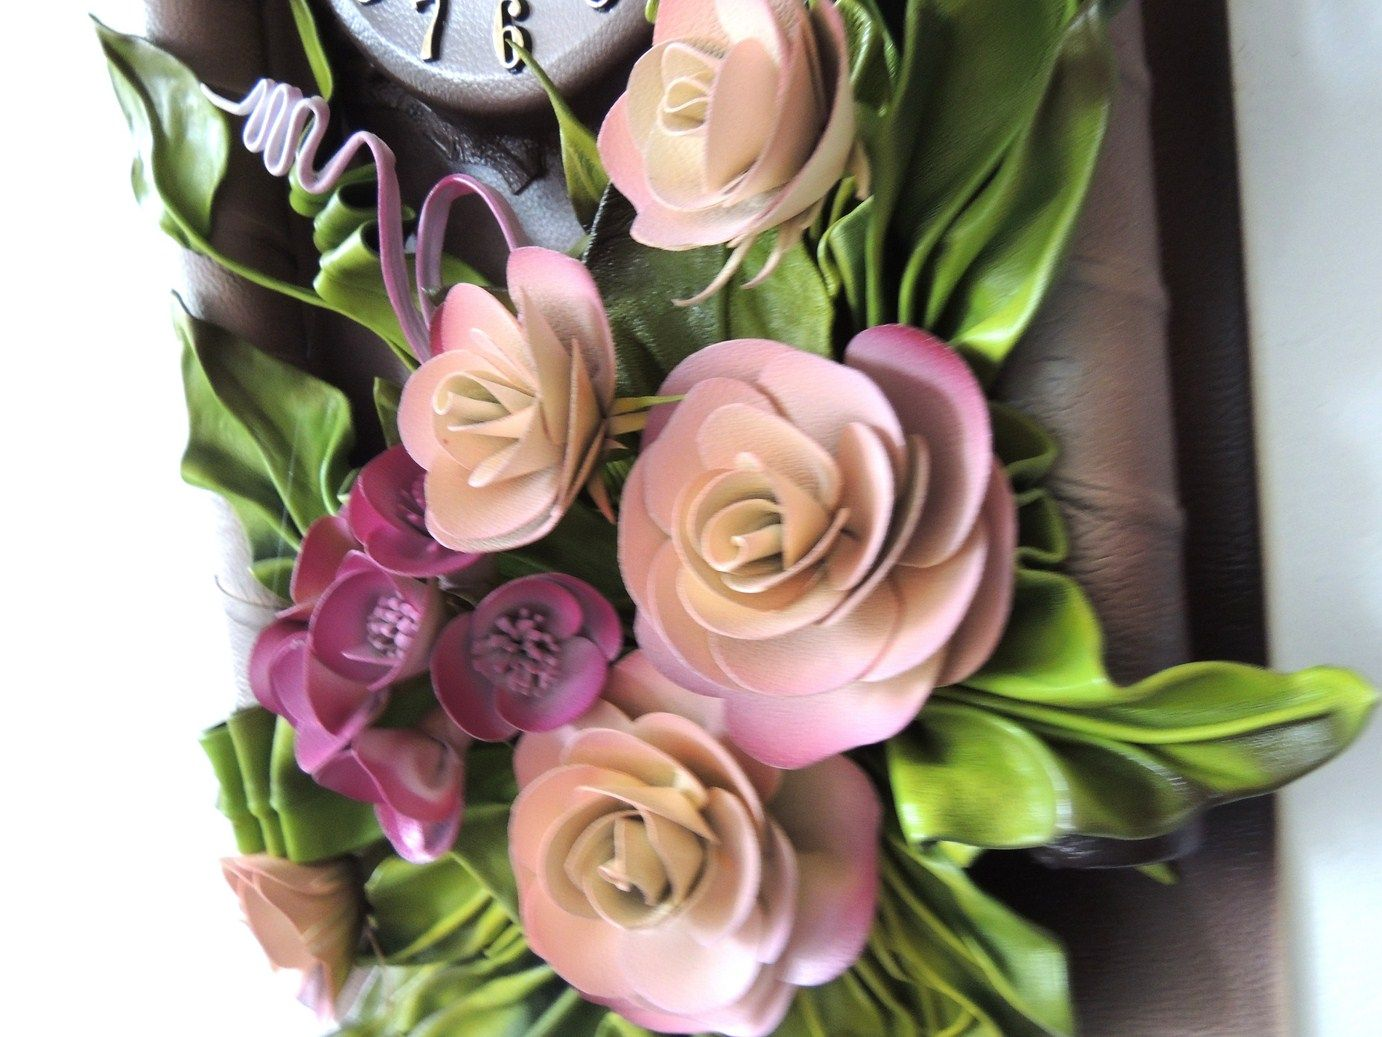 Unique 3D Leather Art Roses and Hydrangeas  with Clock  This Unique Leather  Clock collection we call Wave of the Sea. This beautiful Clock suit any taste or fit any home and office decor. These very unique Leather Clock with Flowers have a  high quality embellished work . Hand crafted.  https://plus.google.com/communities/107298104499962573861  https://www.facebook.com/pages/MAK-Marketplace/331889076912354  http://www.pinterest.com/MAKMarketplace/